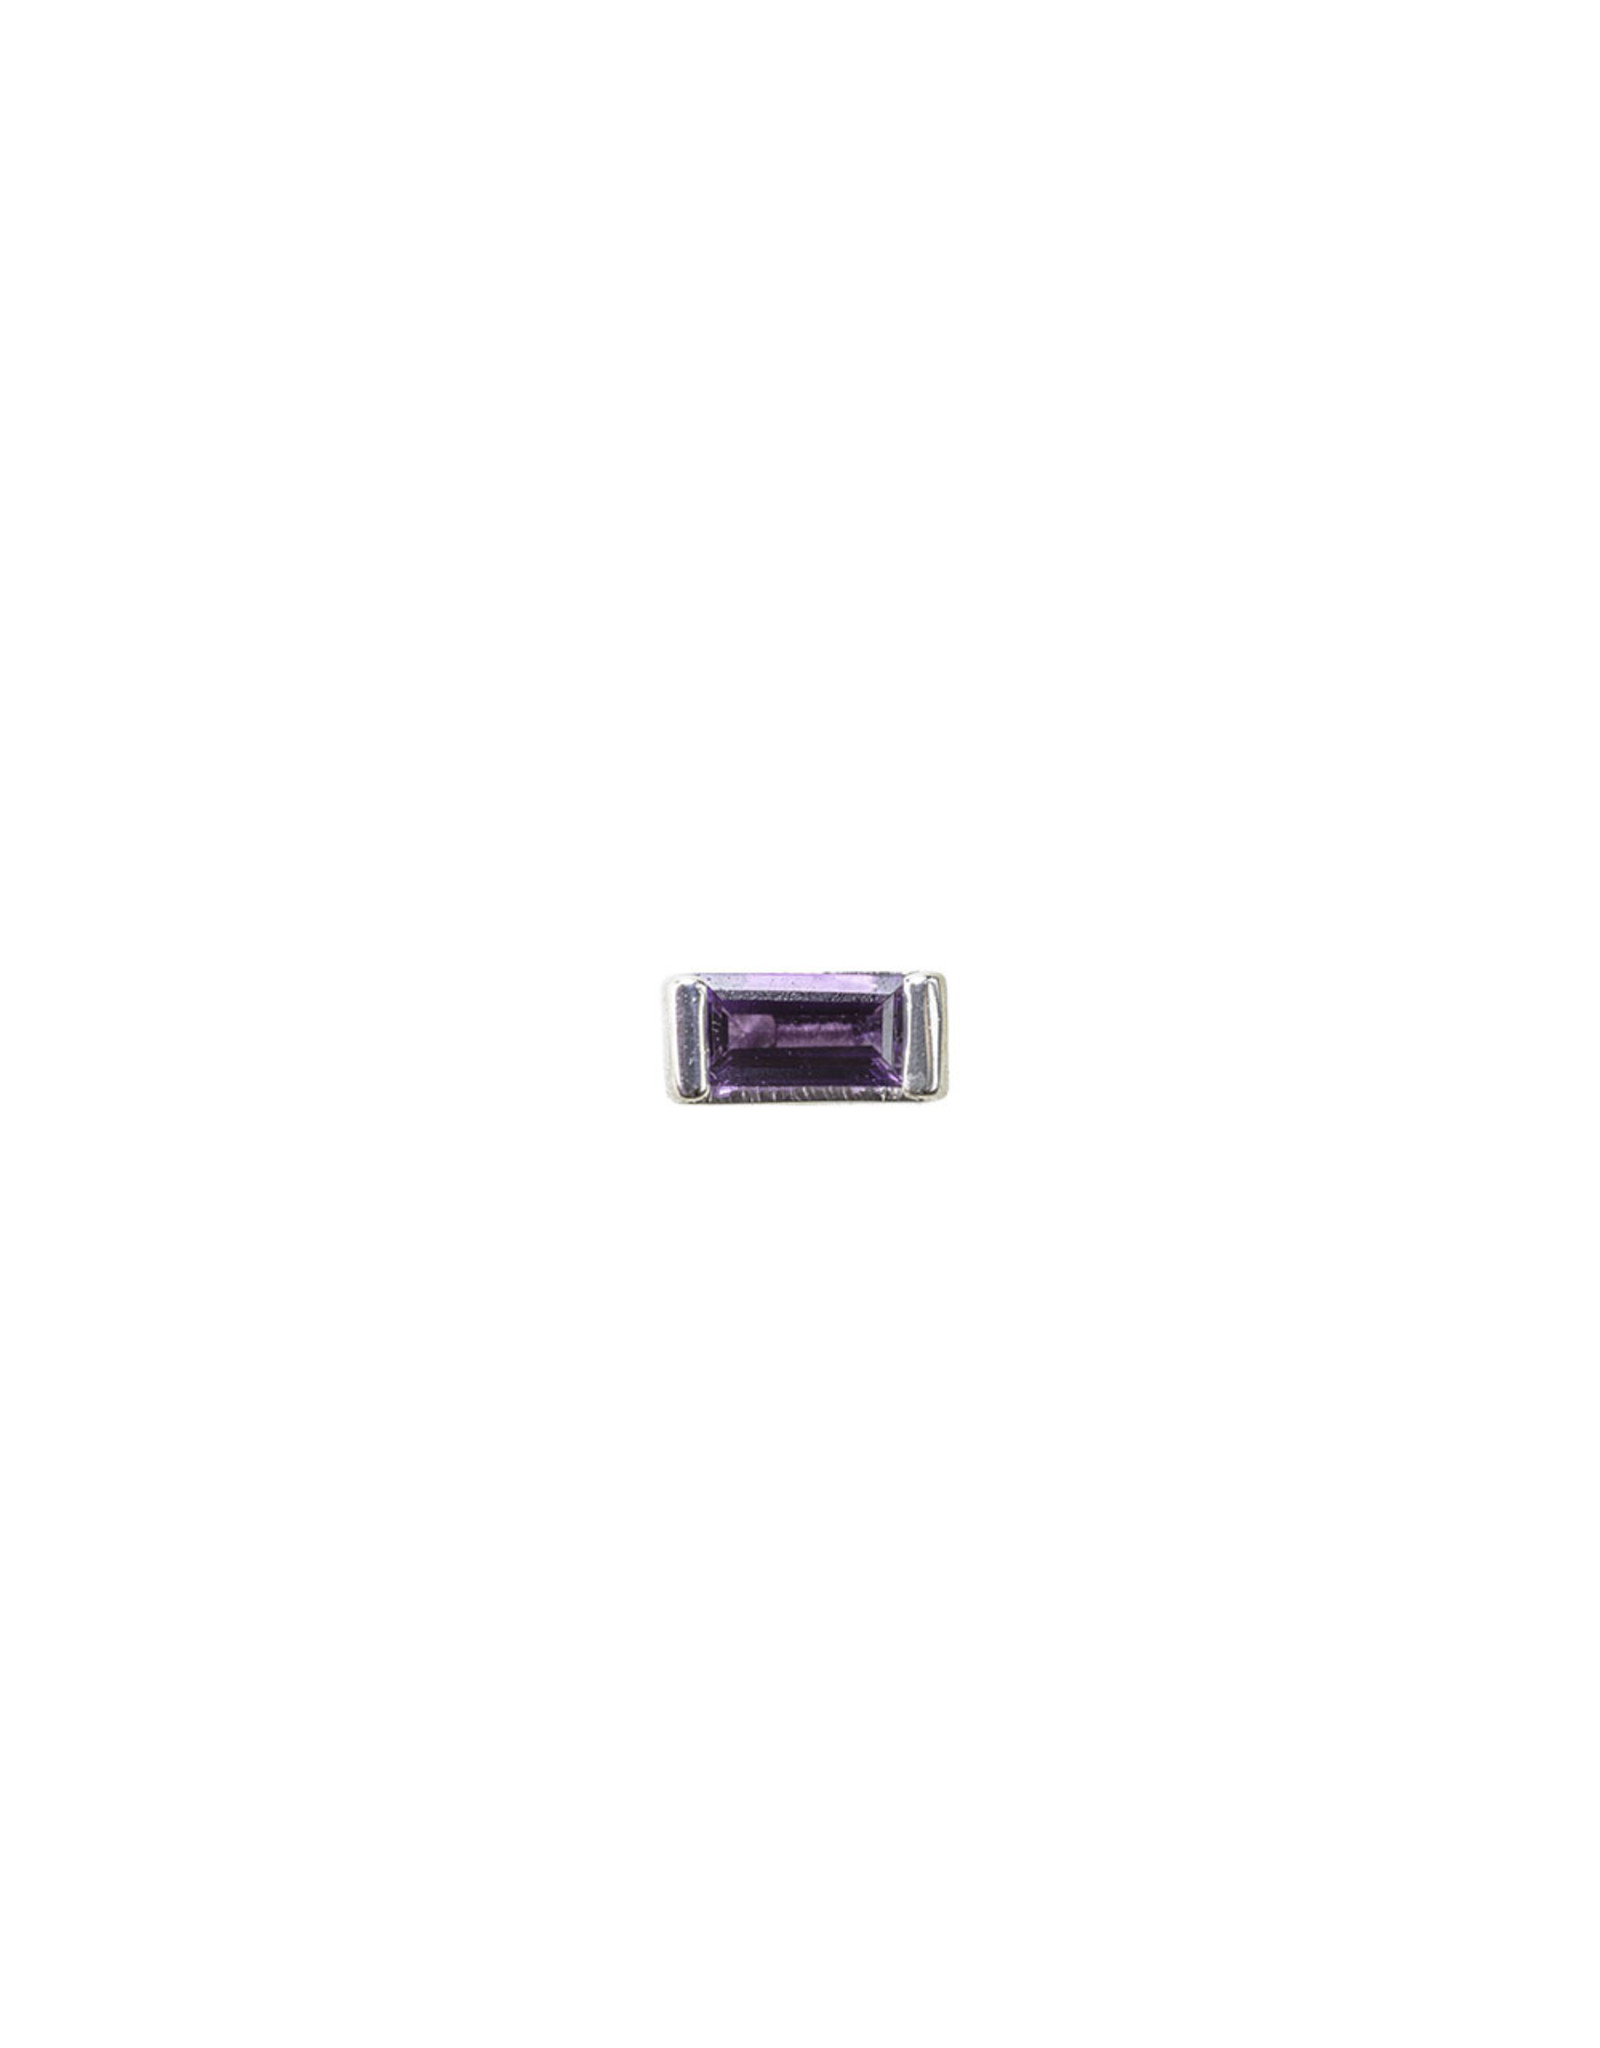 BVLA 18g BVLA baguette with 3x1.5 Amethyst white gold